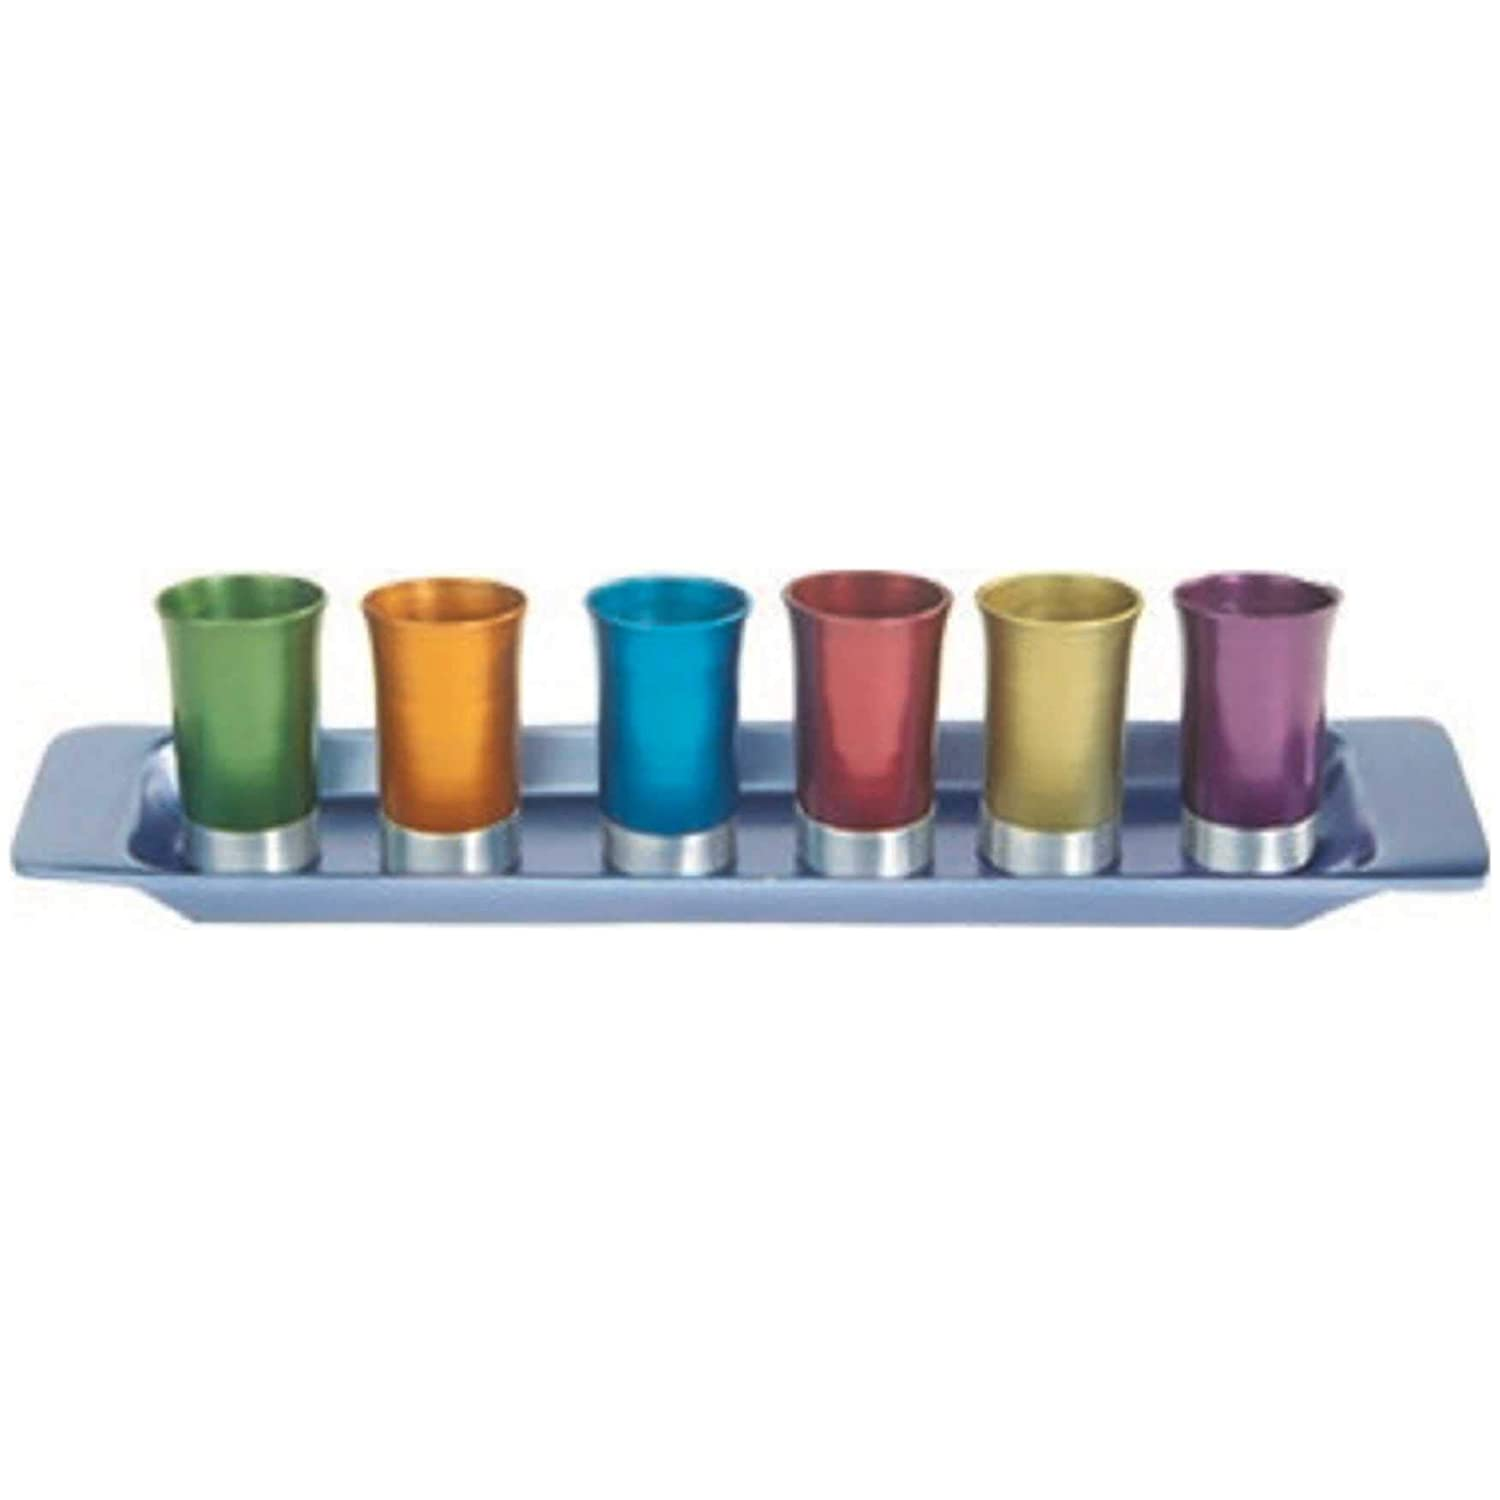 GS-6A Yair Emanual Set of 6 Small Kiddush Goblets Cups with Tray Aluminum  Multicolor  Judaica World of Judaica AR-GS-6A